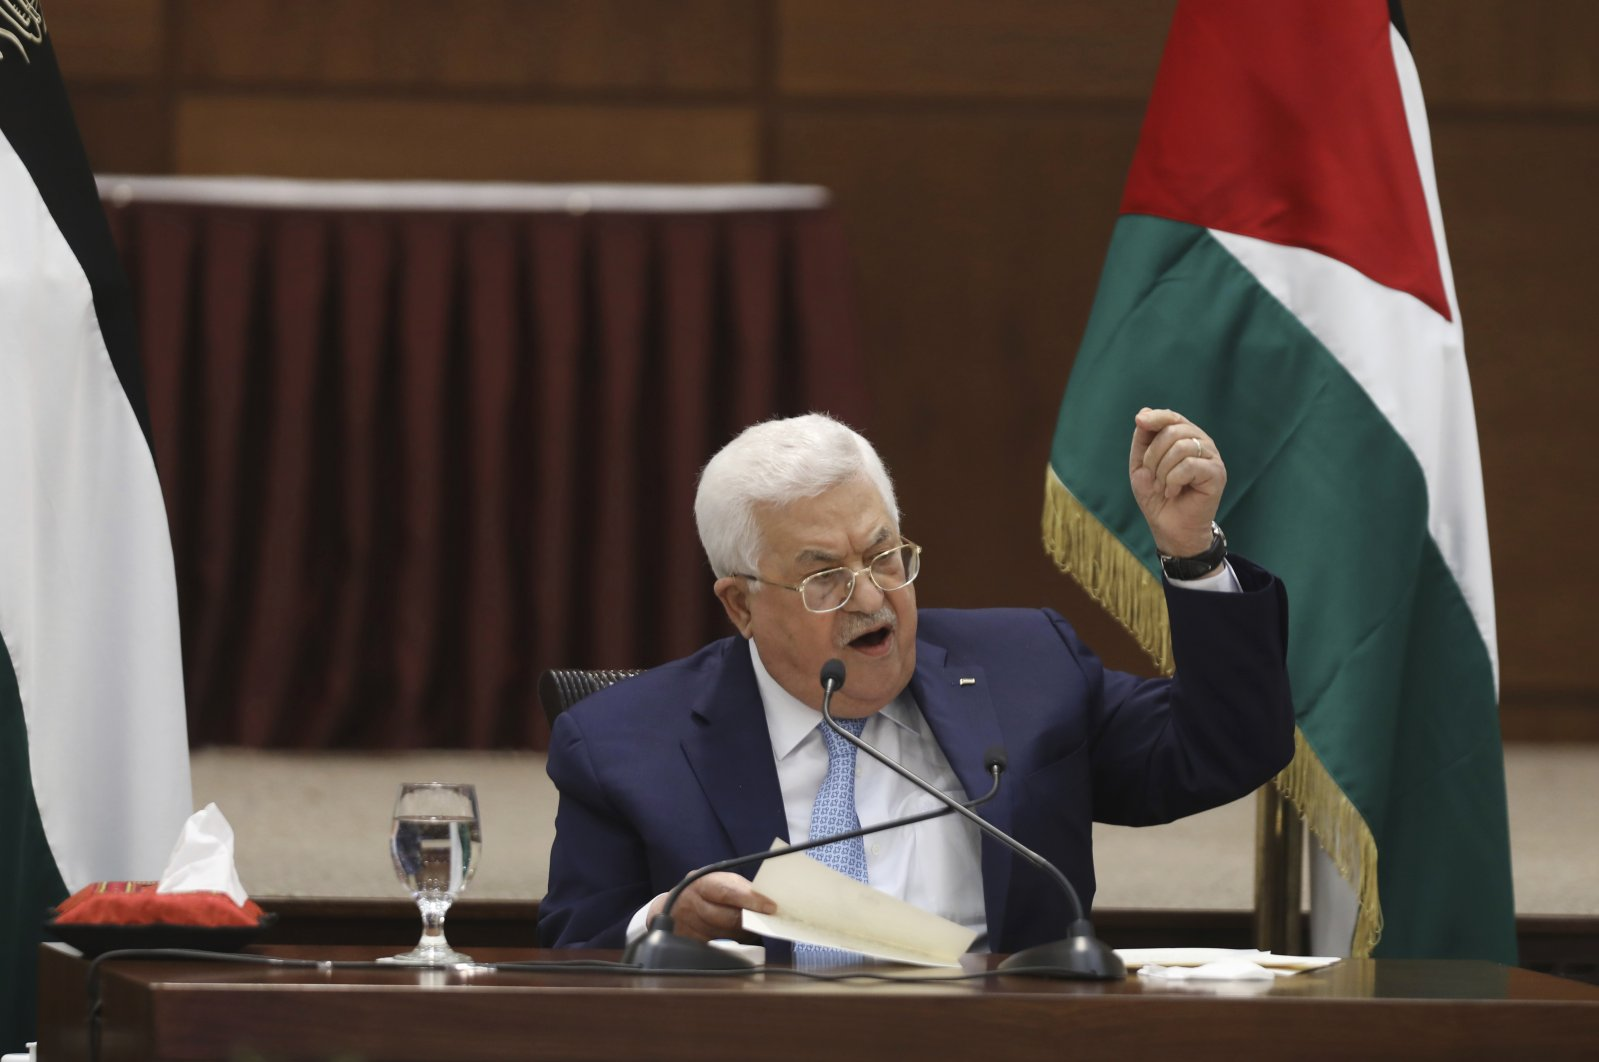 Palestinian President Mahmoud Abbas heads a leadership meeting at his headquarters in the West Bank city of Ramallah, May 19, 2020. (AP Photo)